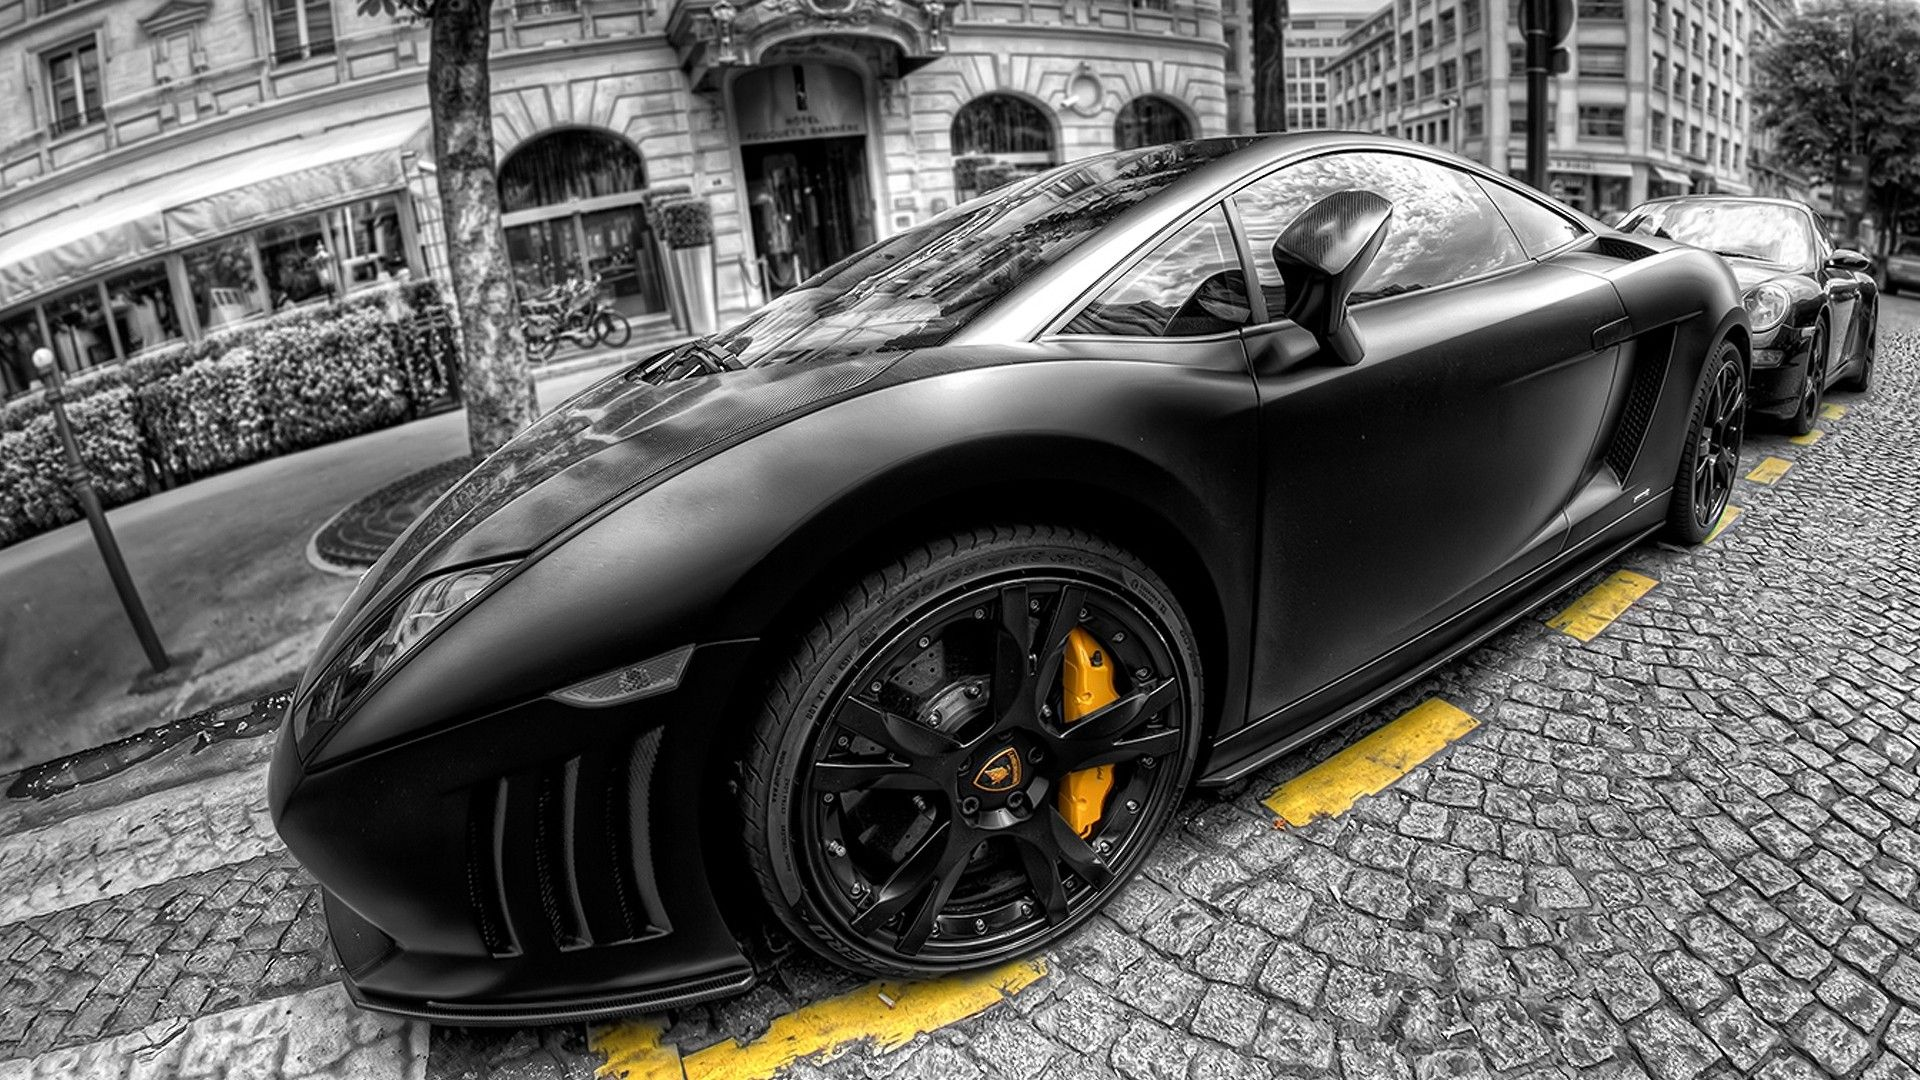 Black Lamborghini Aventador Supercar Hd Desktop Wallpaper High